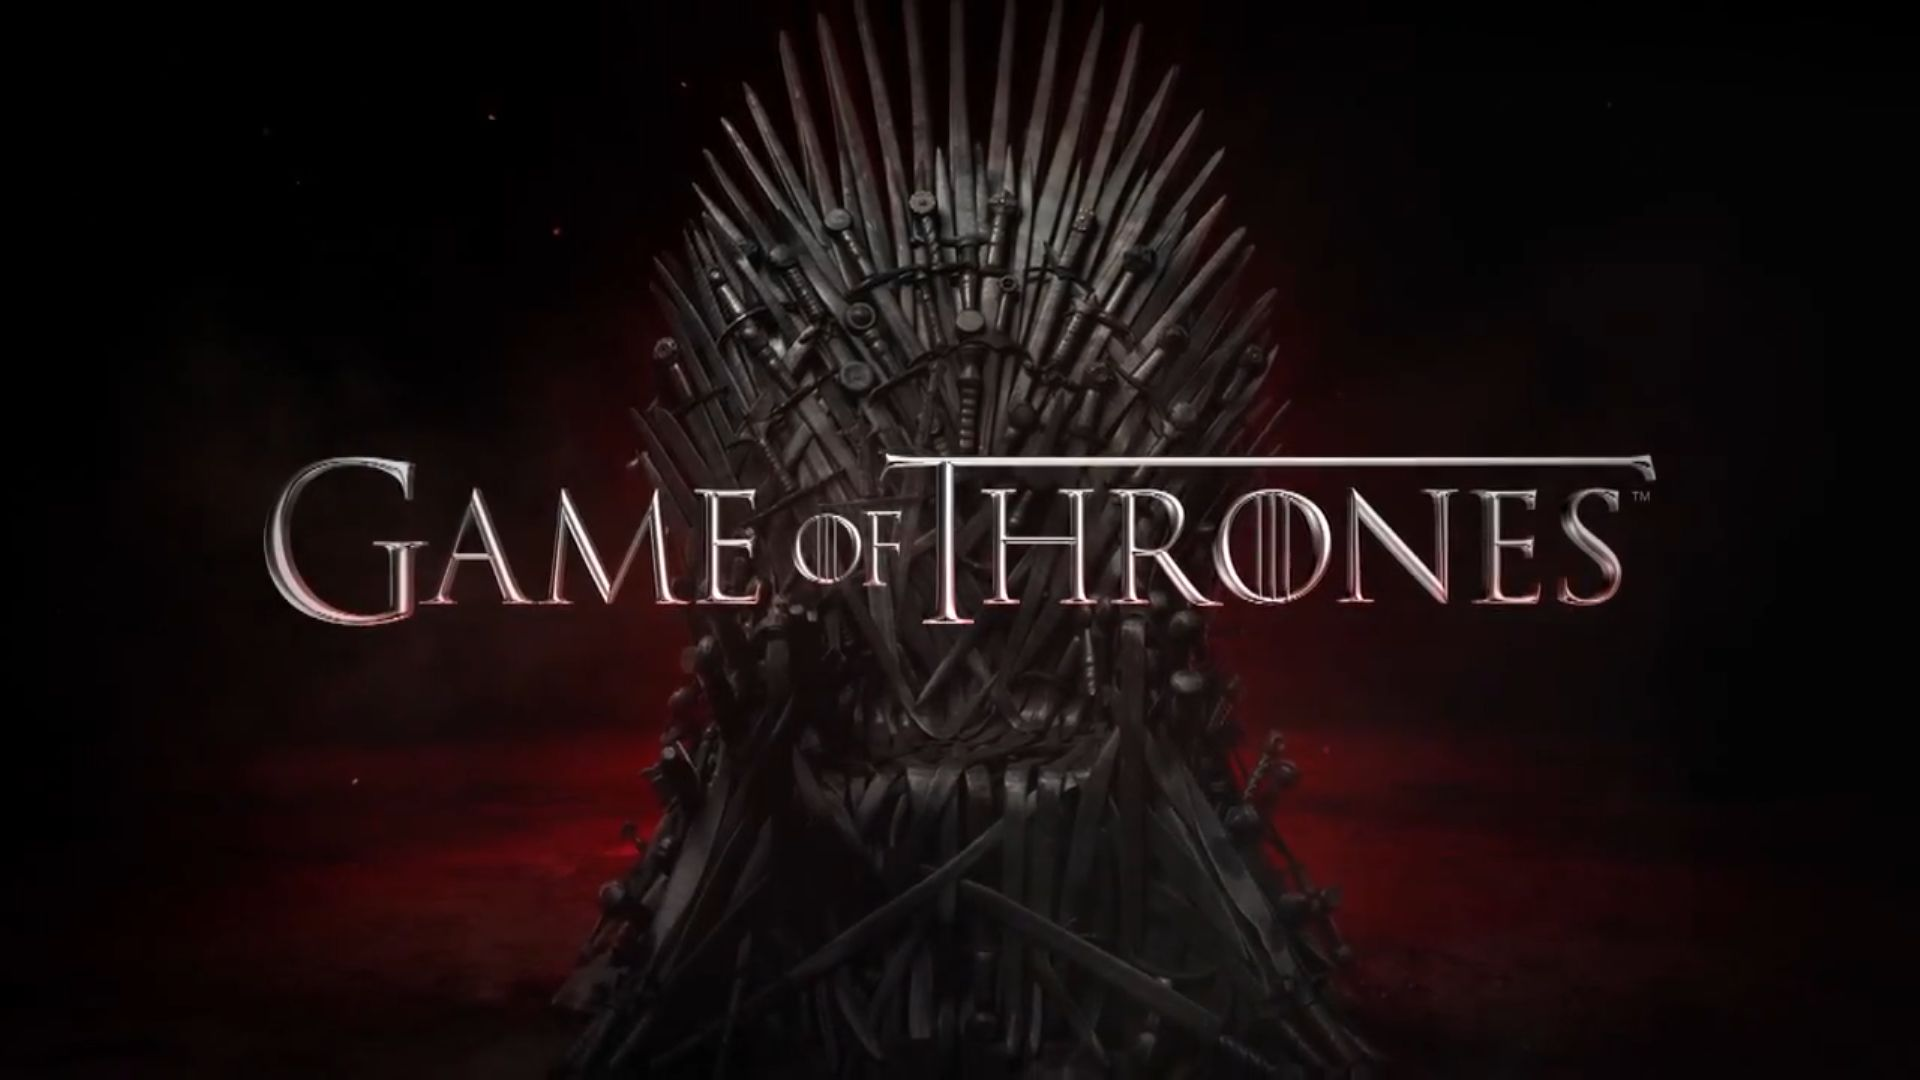 What Happens Over Winter - Three Marketing Lessons from Game of Thrones | Social Media Today